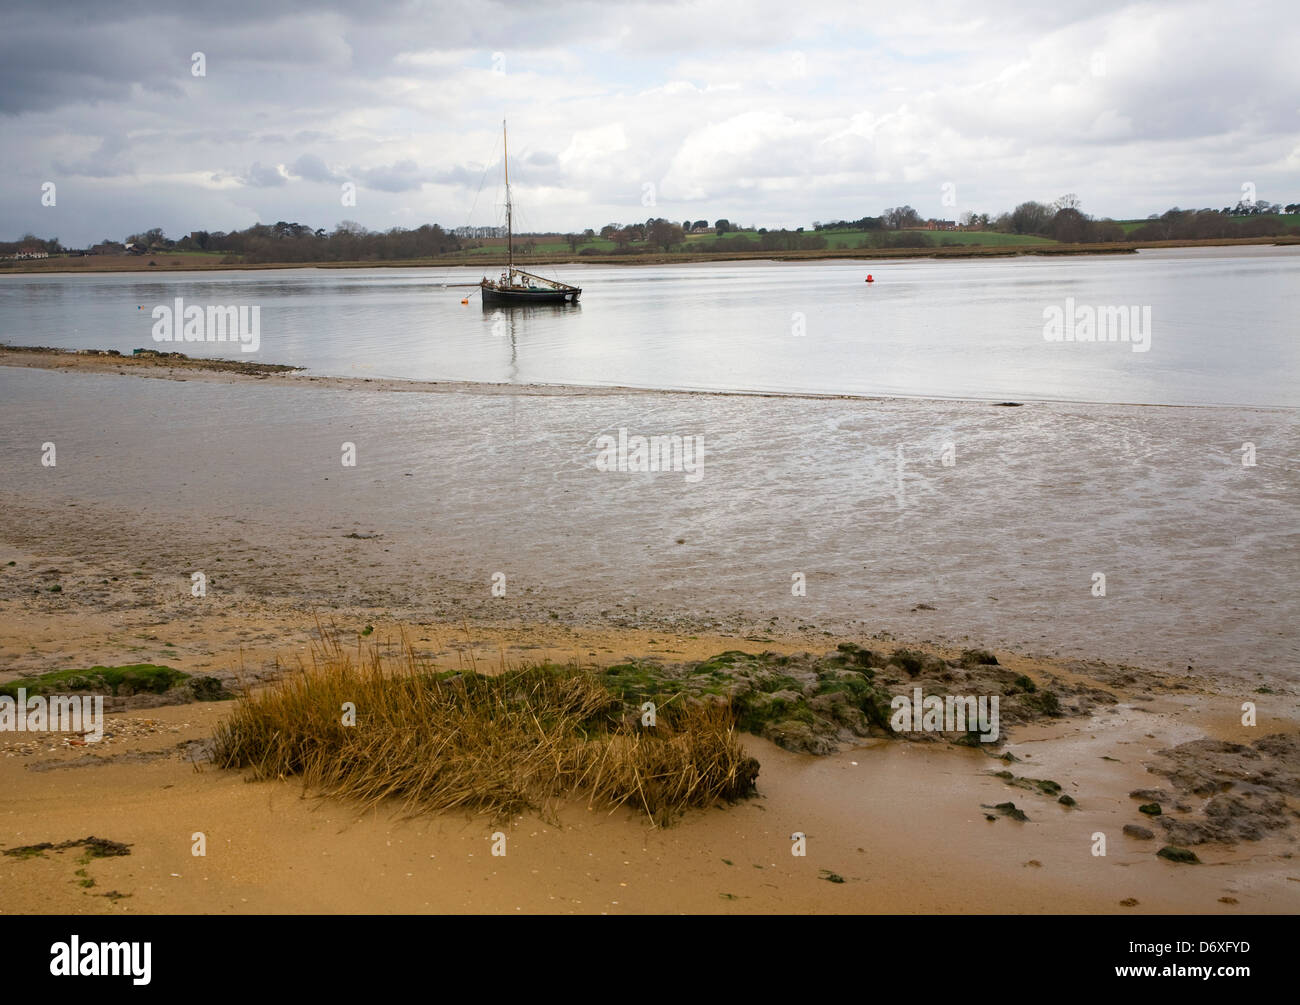 Yacht at moorings River Deben, Ramsholt, Suffolk, England - Stock Image